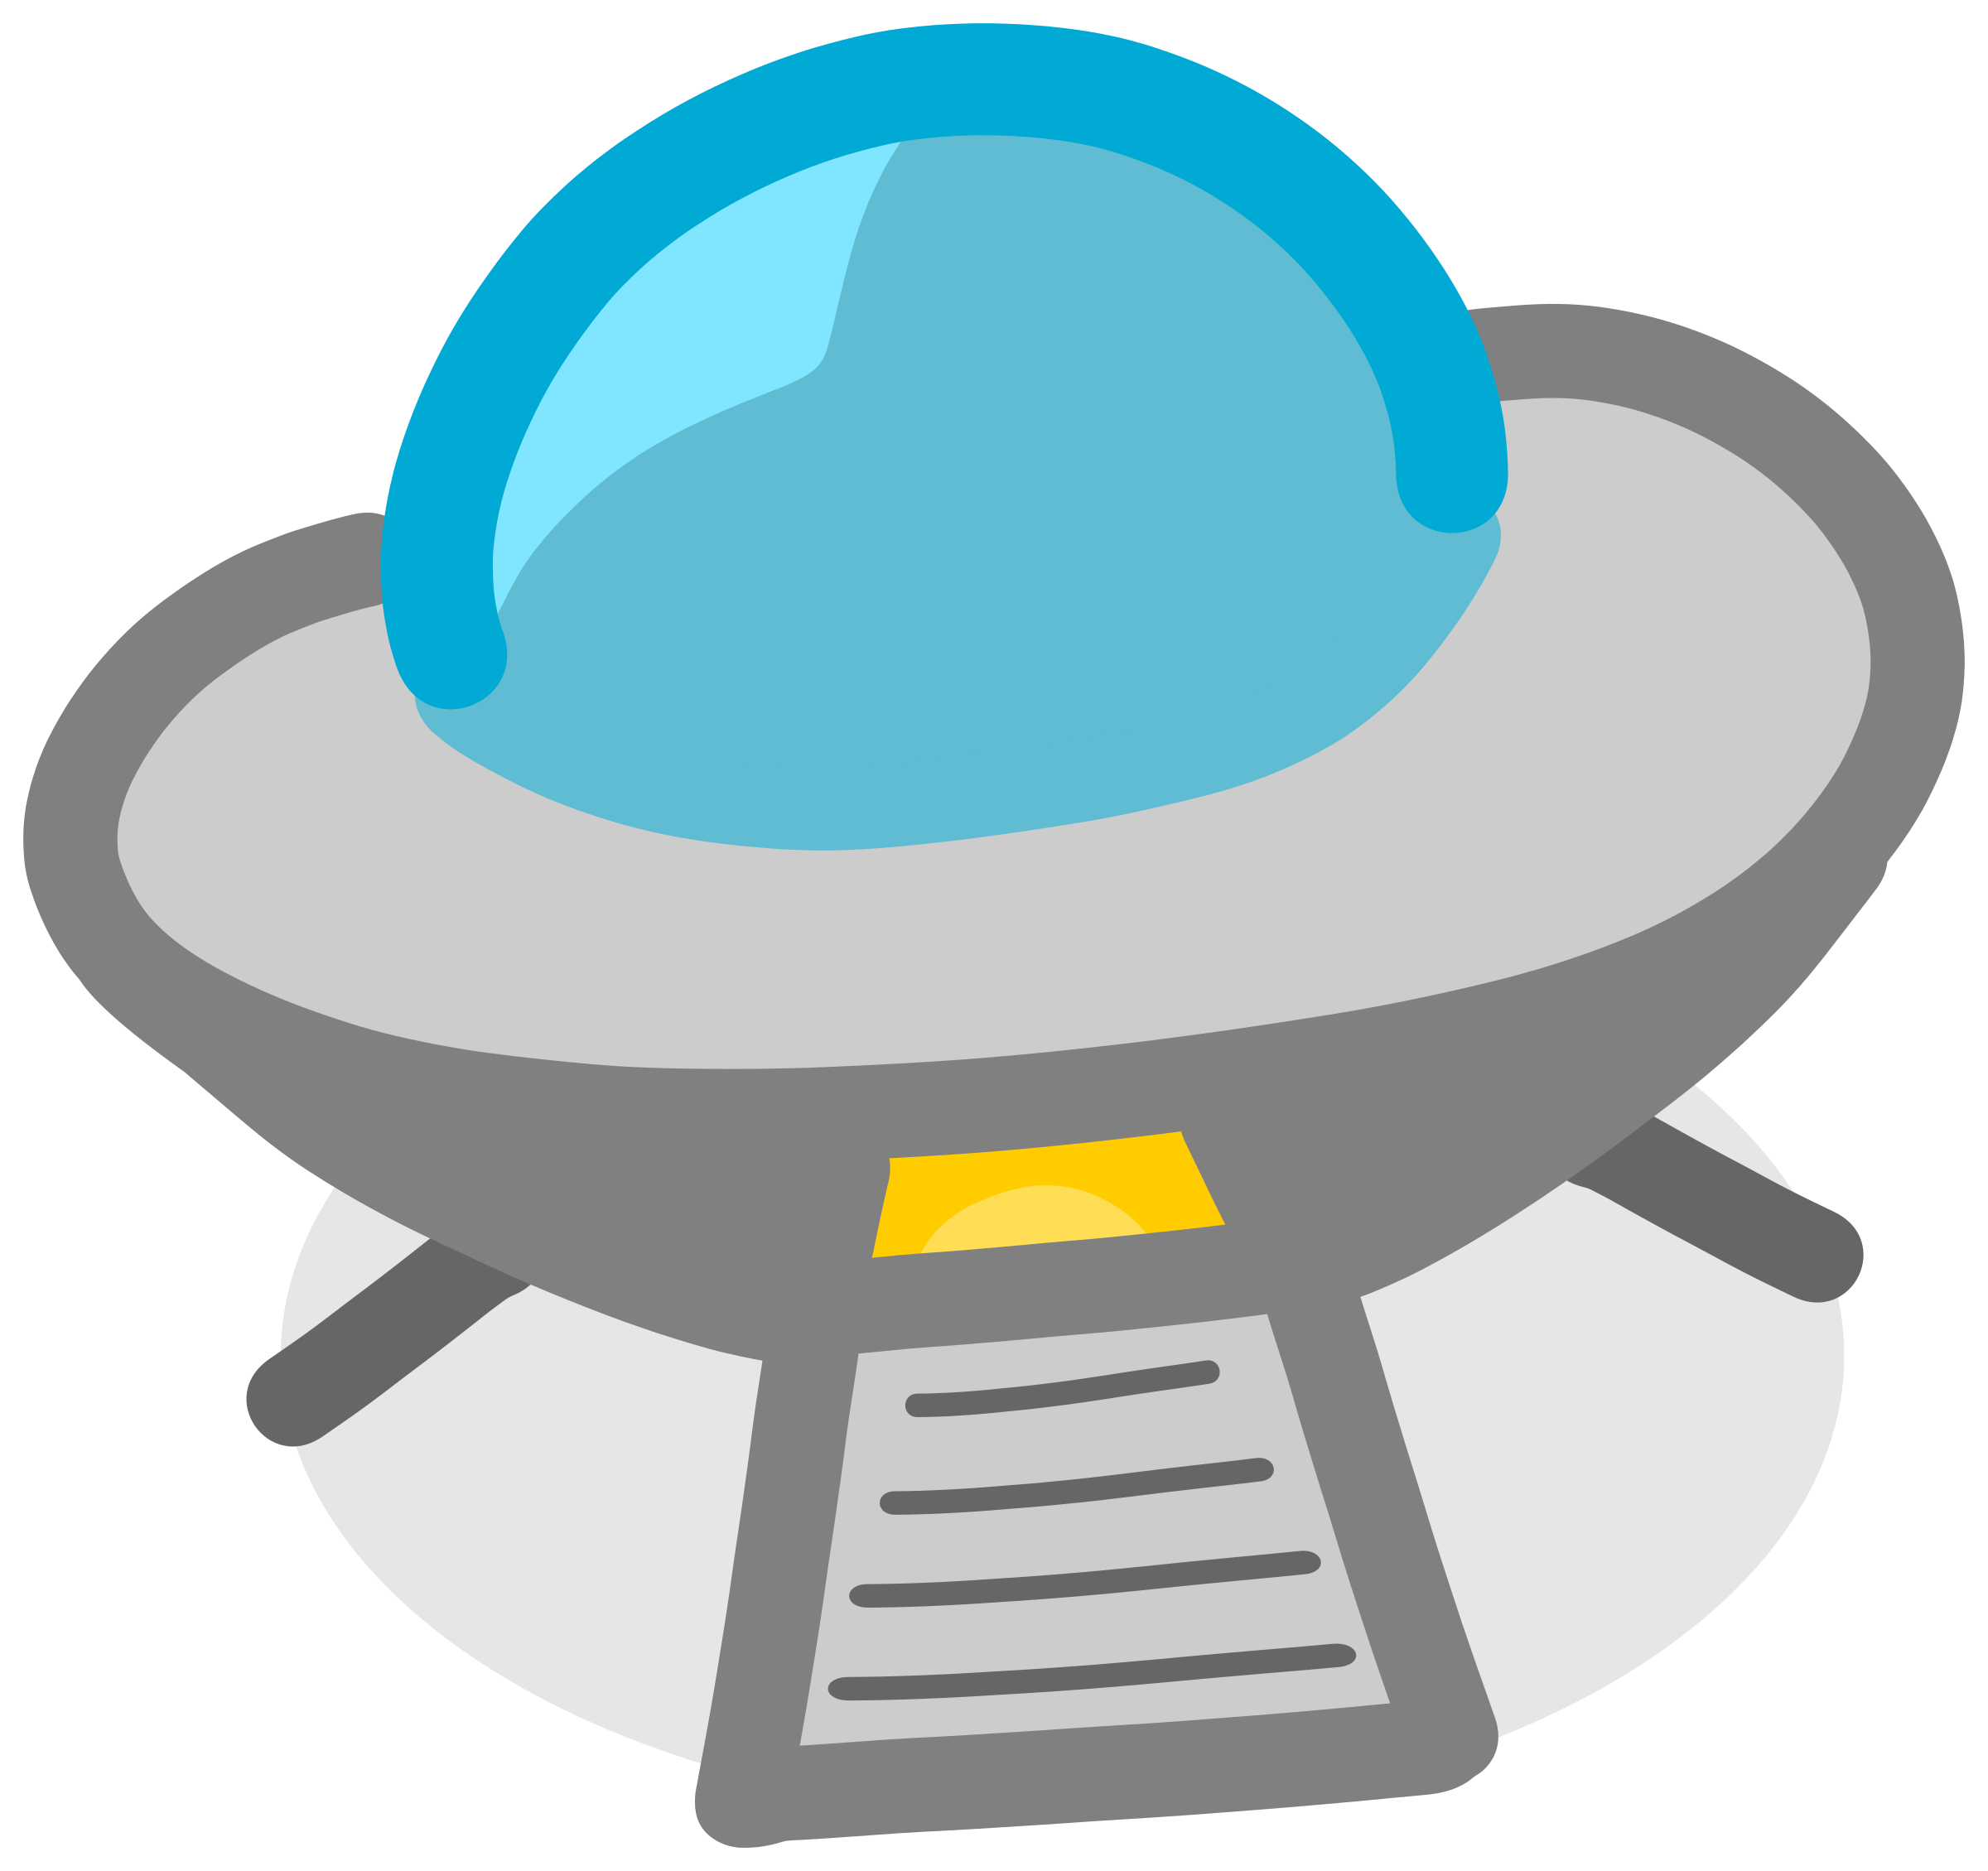 Ufo clipart line art. Mad icons png free